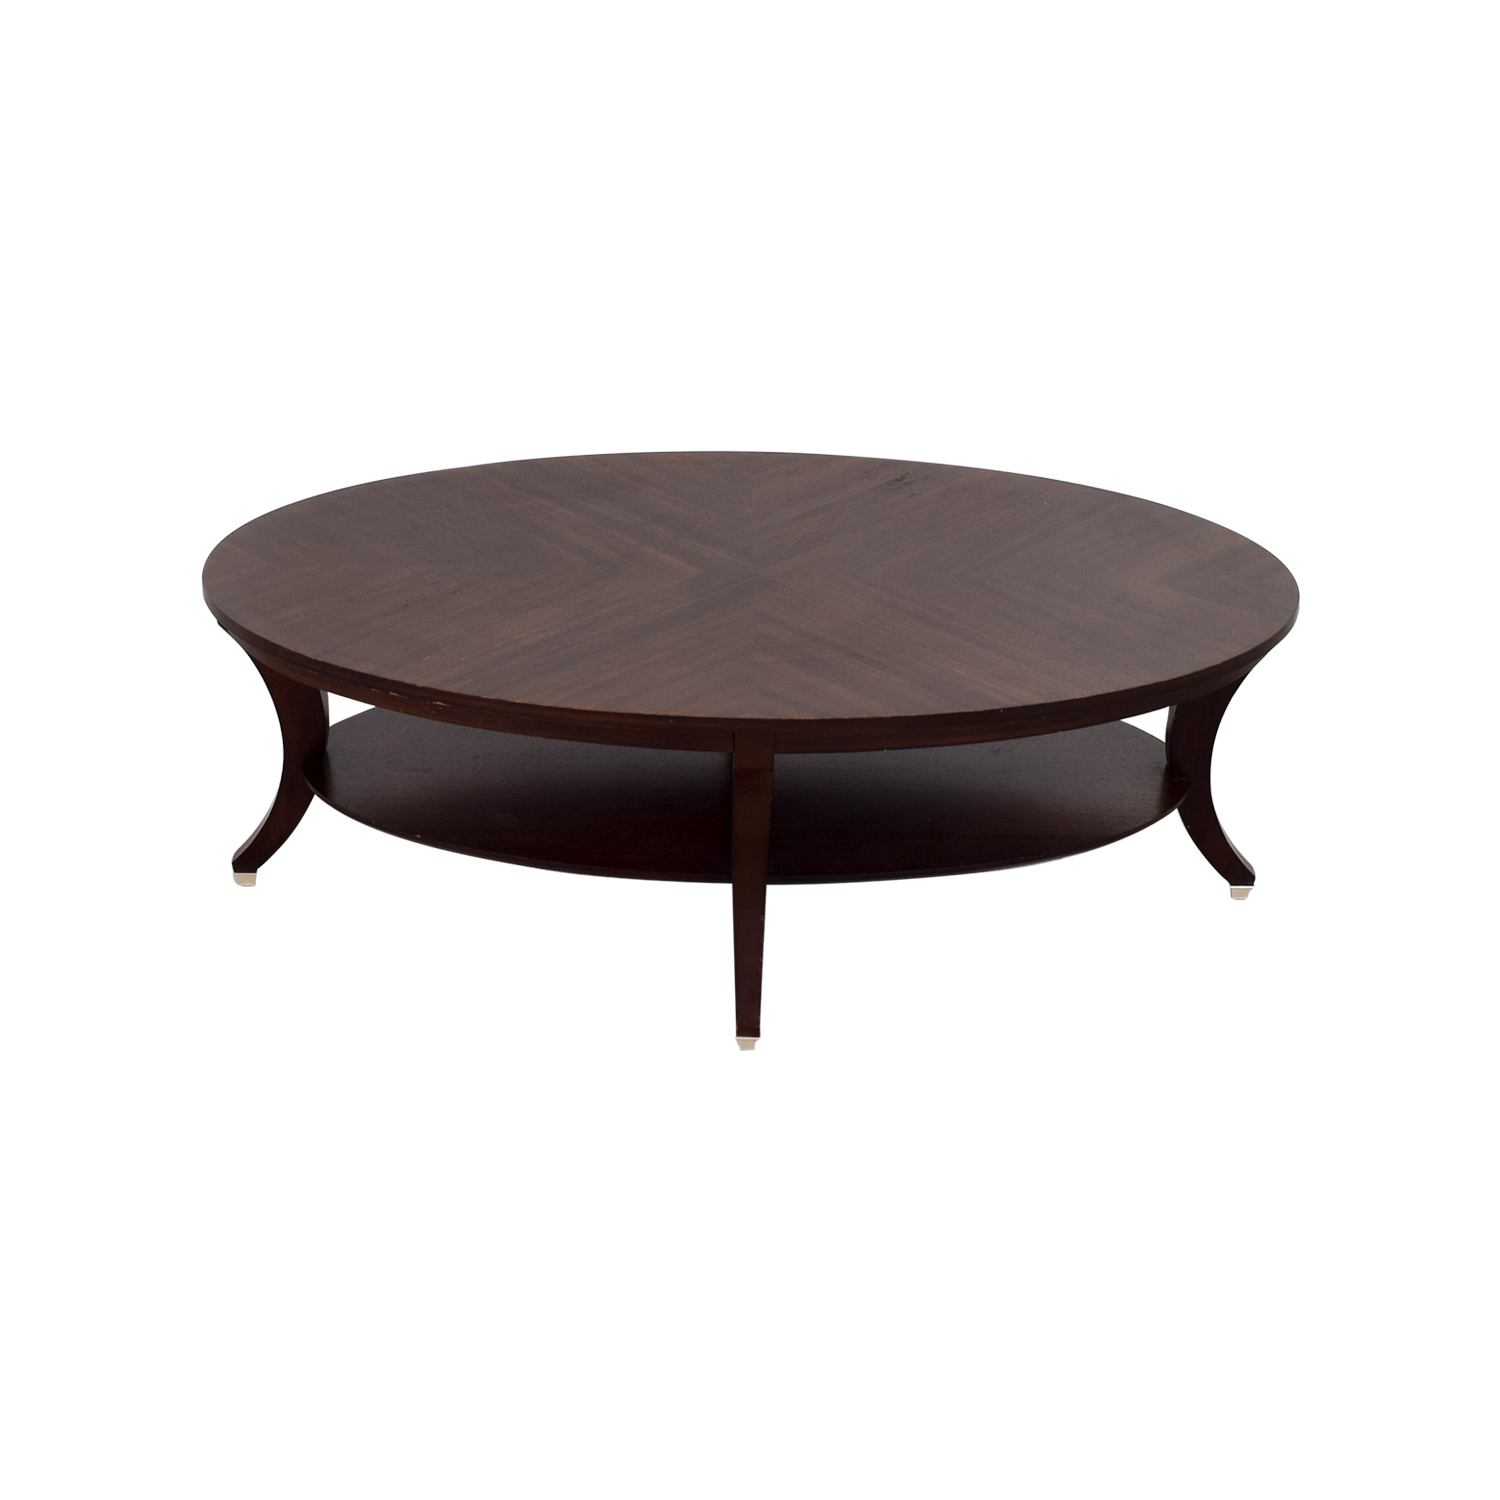 Used Ethan Allen Coffee Tables: Ethan Allen Ethan Allen Adler Oval Coffee Table